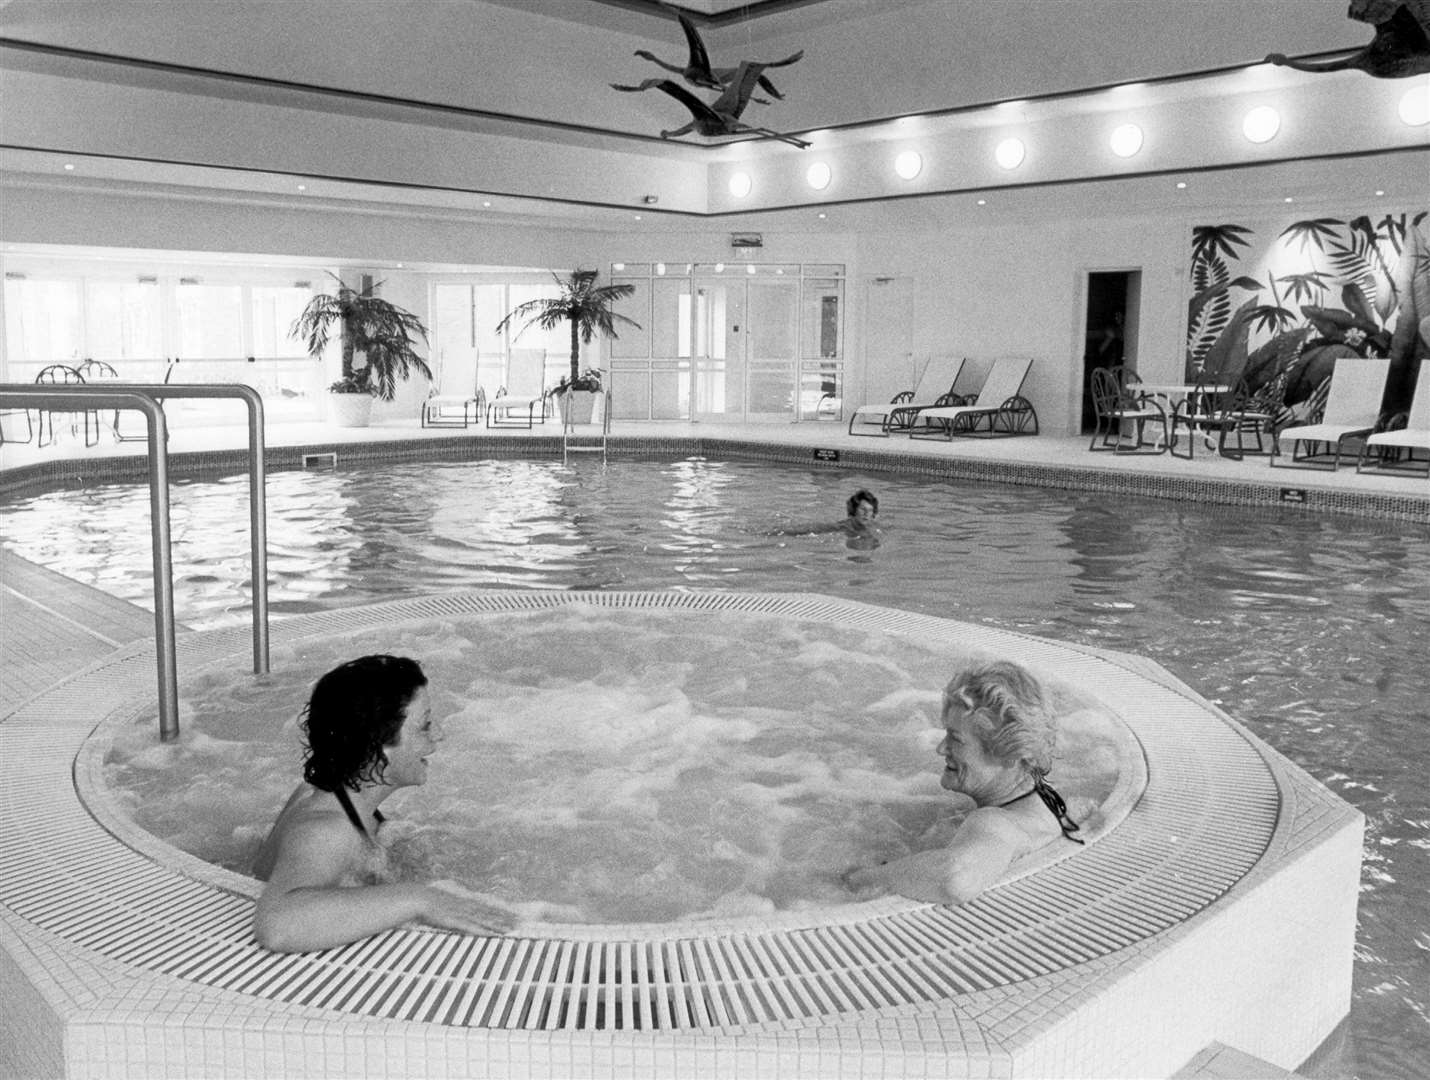 The swimming pool in Stakis County Court Hotel, Maidstone - 1991